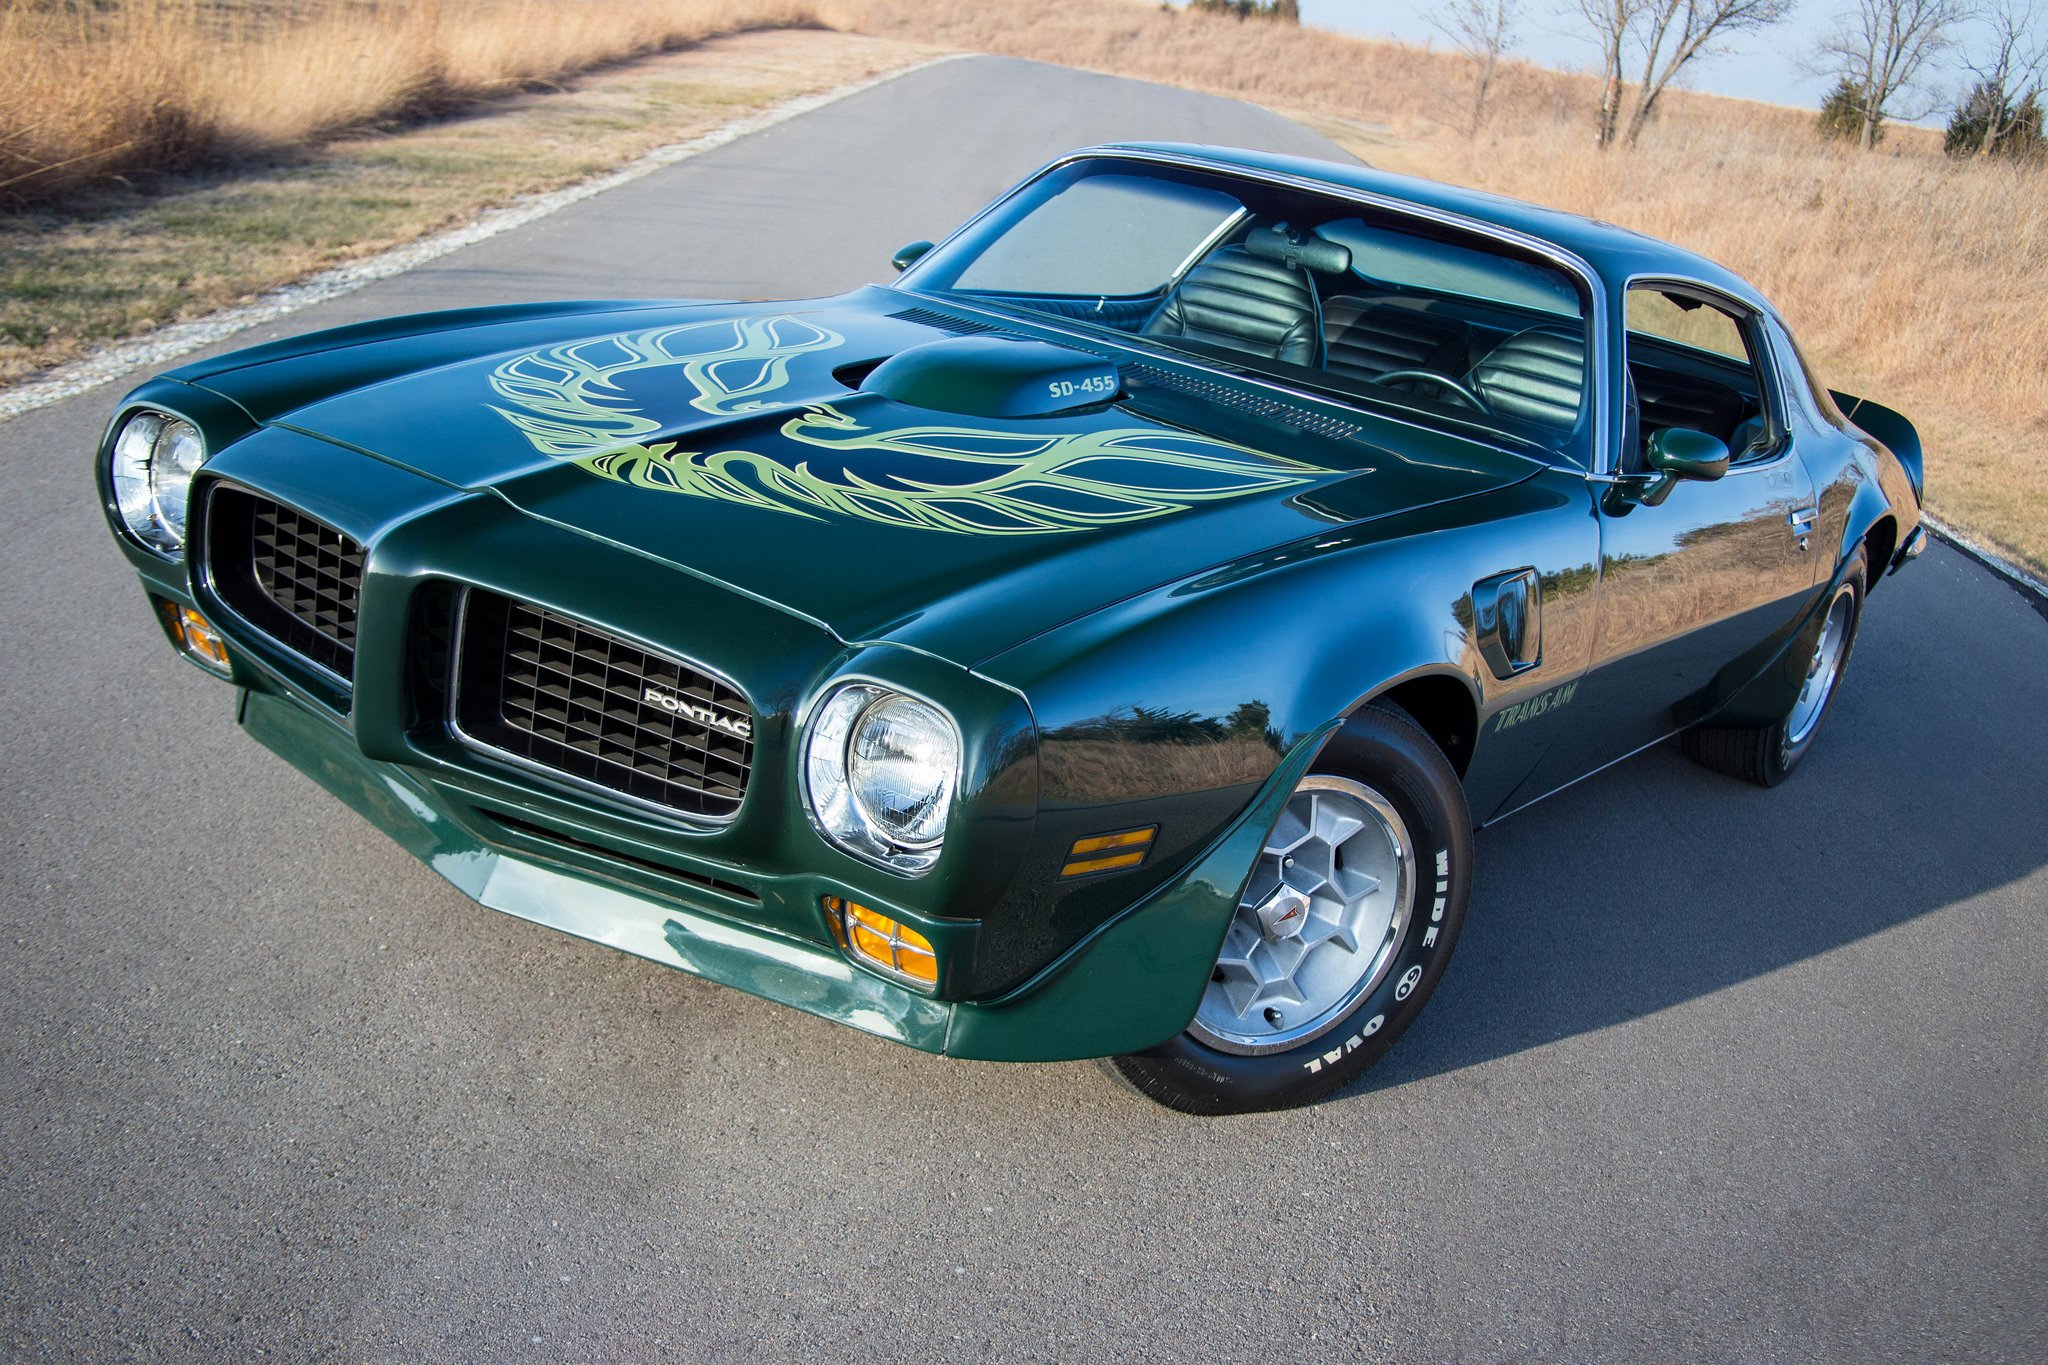 1973 pontiac green trans am coupe cars wallpaper 2048x1365 793053 wallpaperup. Black Bedroom Furniture Sets. Home Design Ideas